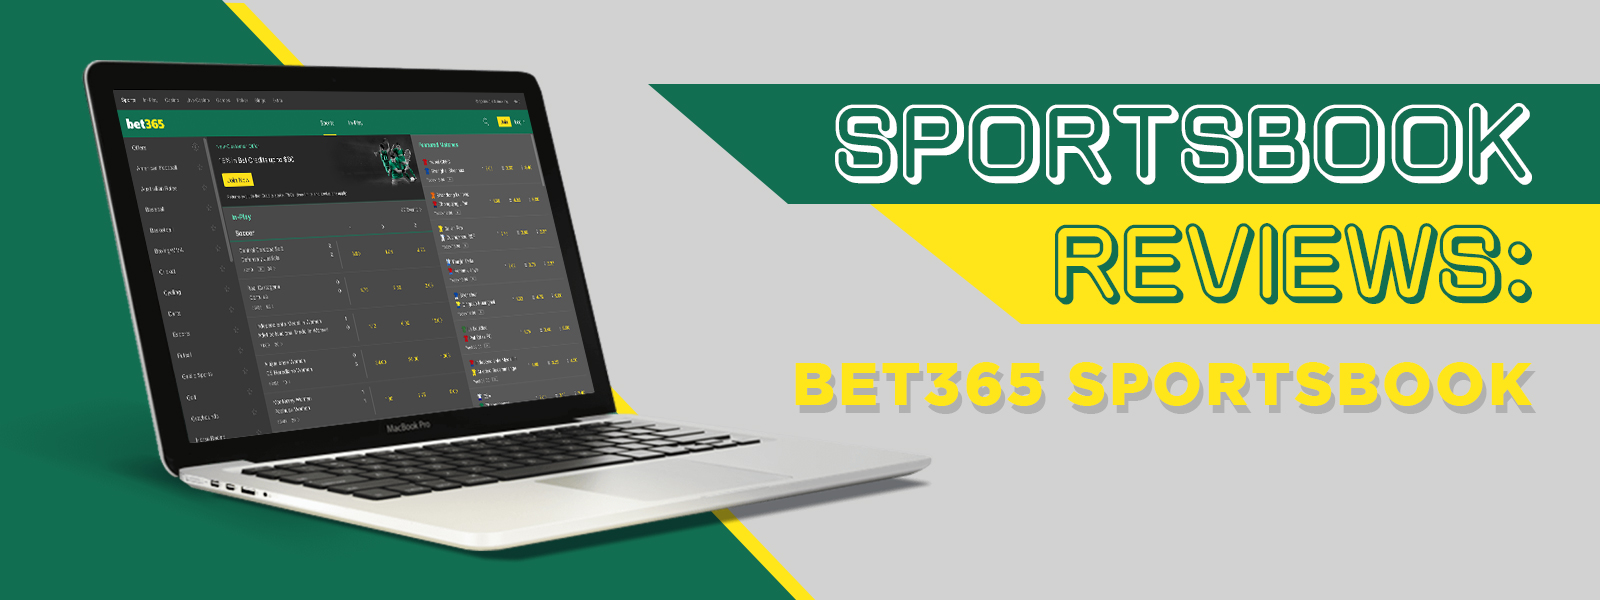 Sportsbook Reviews: Bet365 Sportsbook